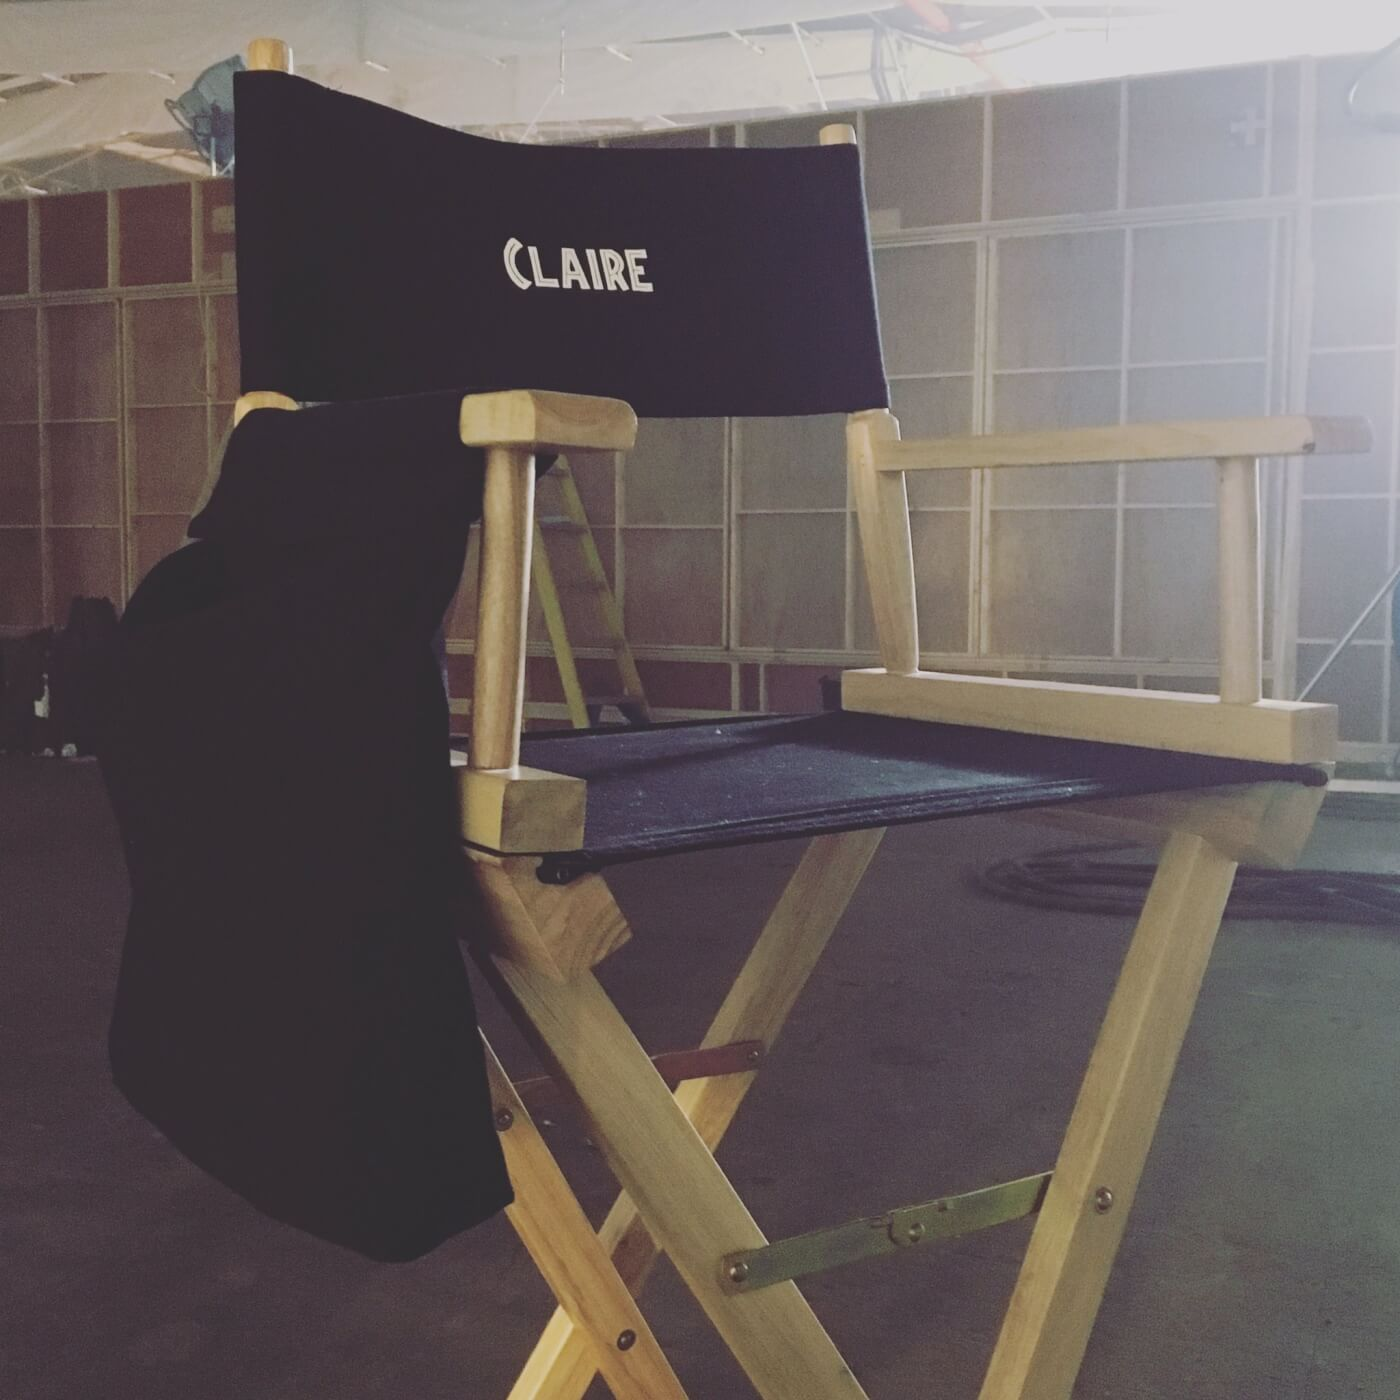 DAY 1 – Bryce Dallas Howard Kicks off Filming with the First Set Photo